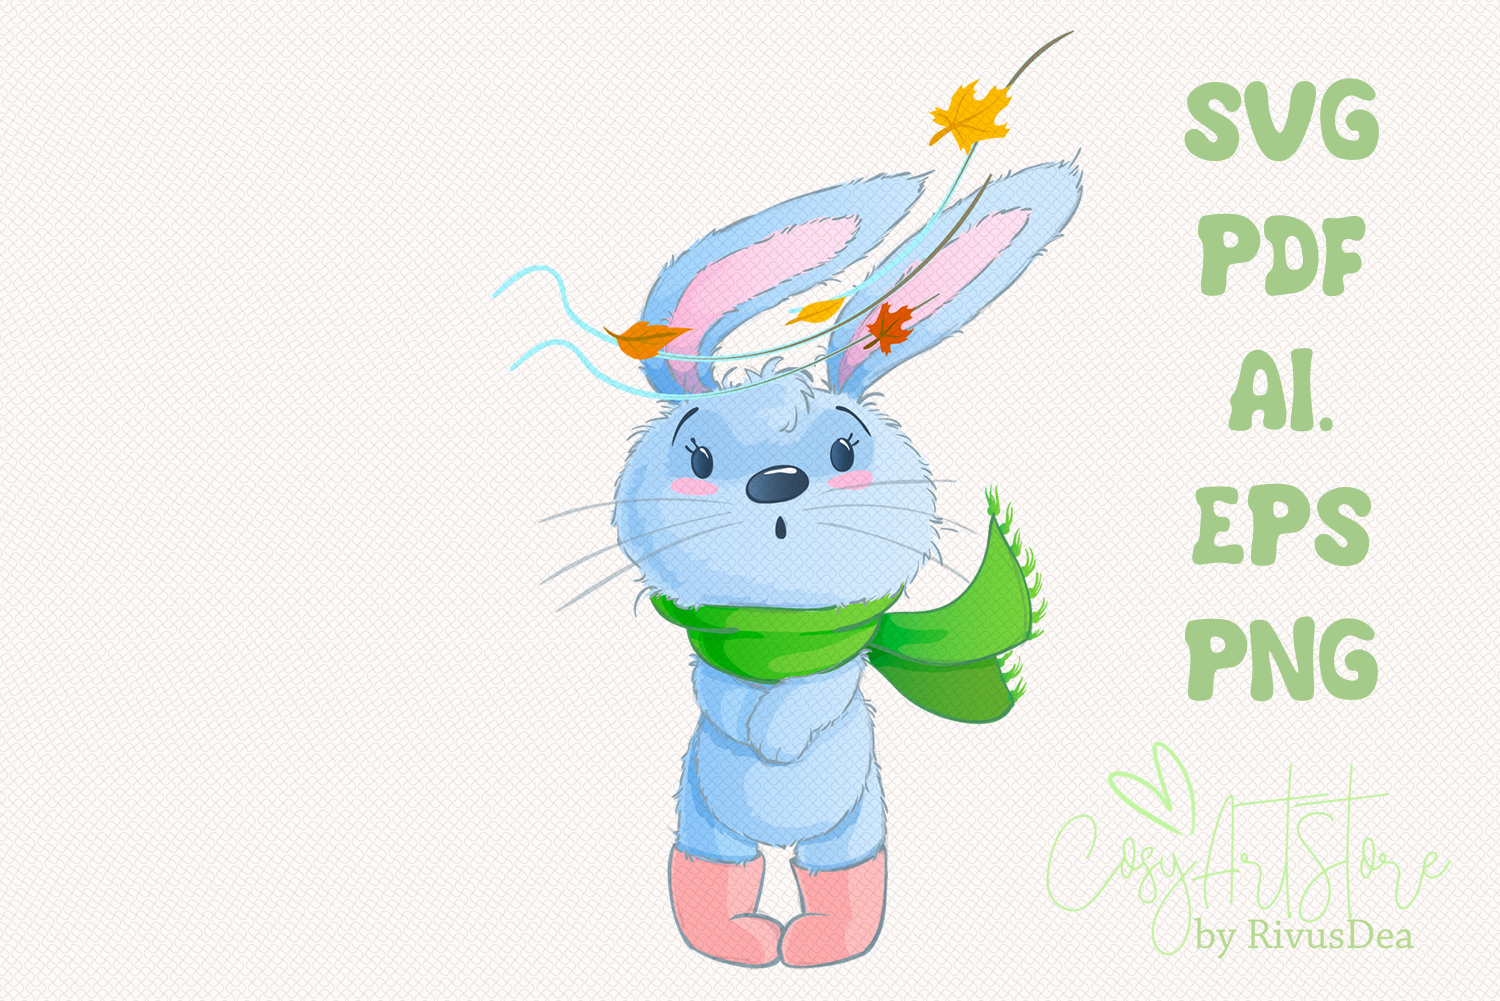 Bunny SVG download, Autumn leaves rabbit PNG, Hare, Cute example image 1